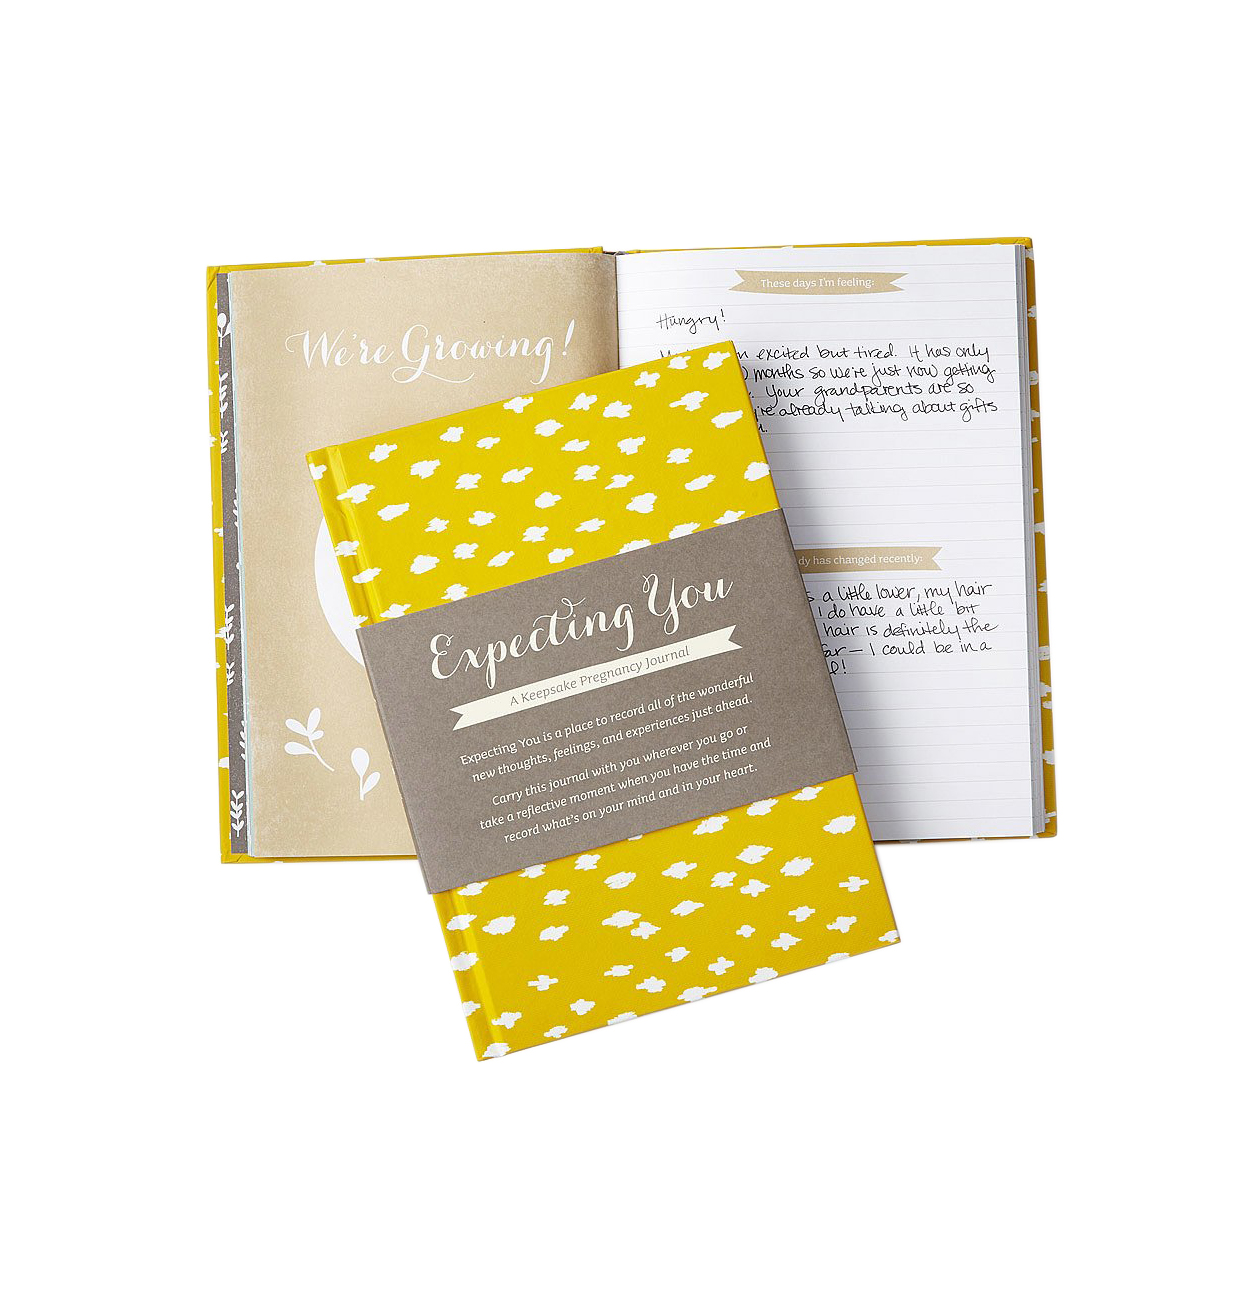 Keepsake Pregnancy Journal